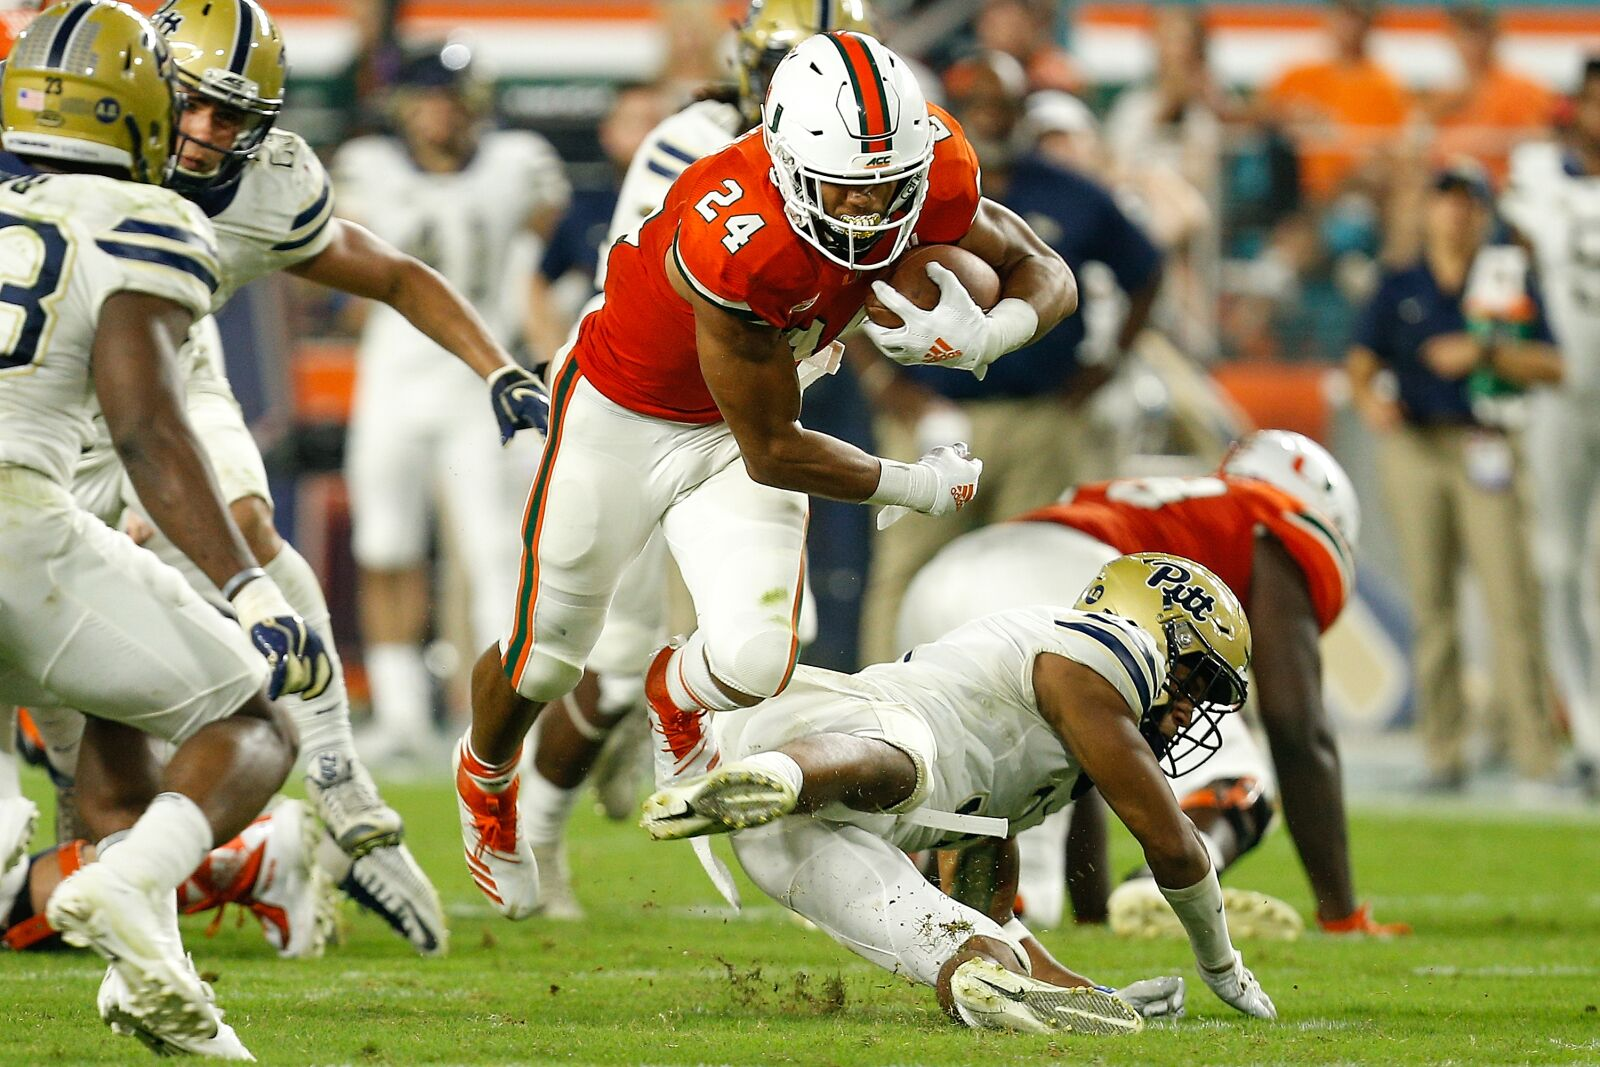 Former Miami Hurricanes RB Travis Homer shines at NFL Combine